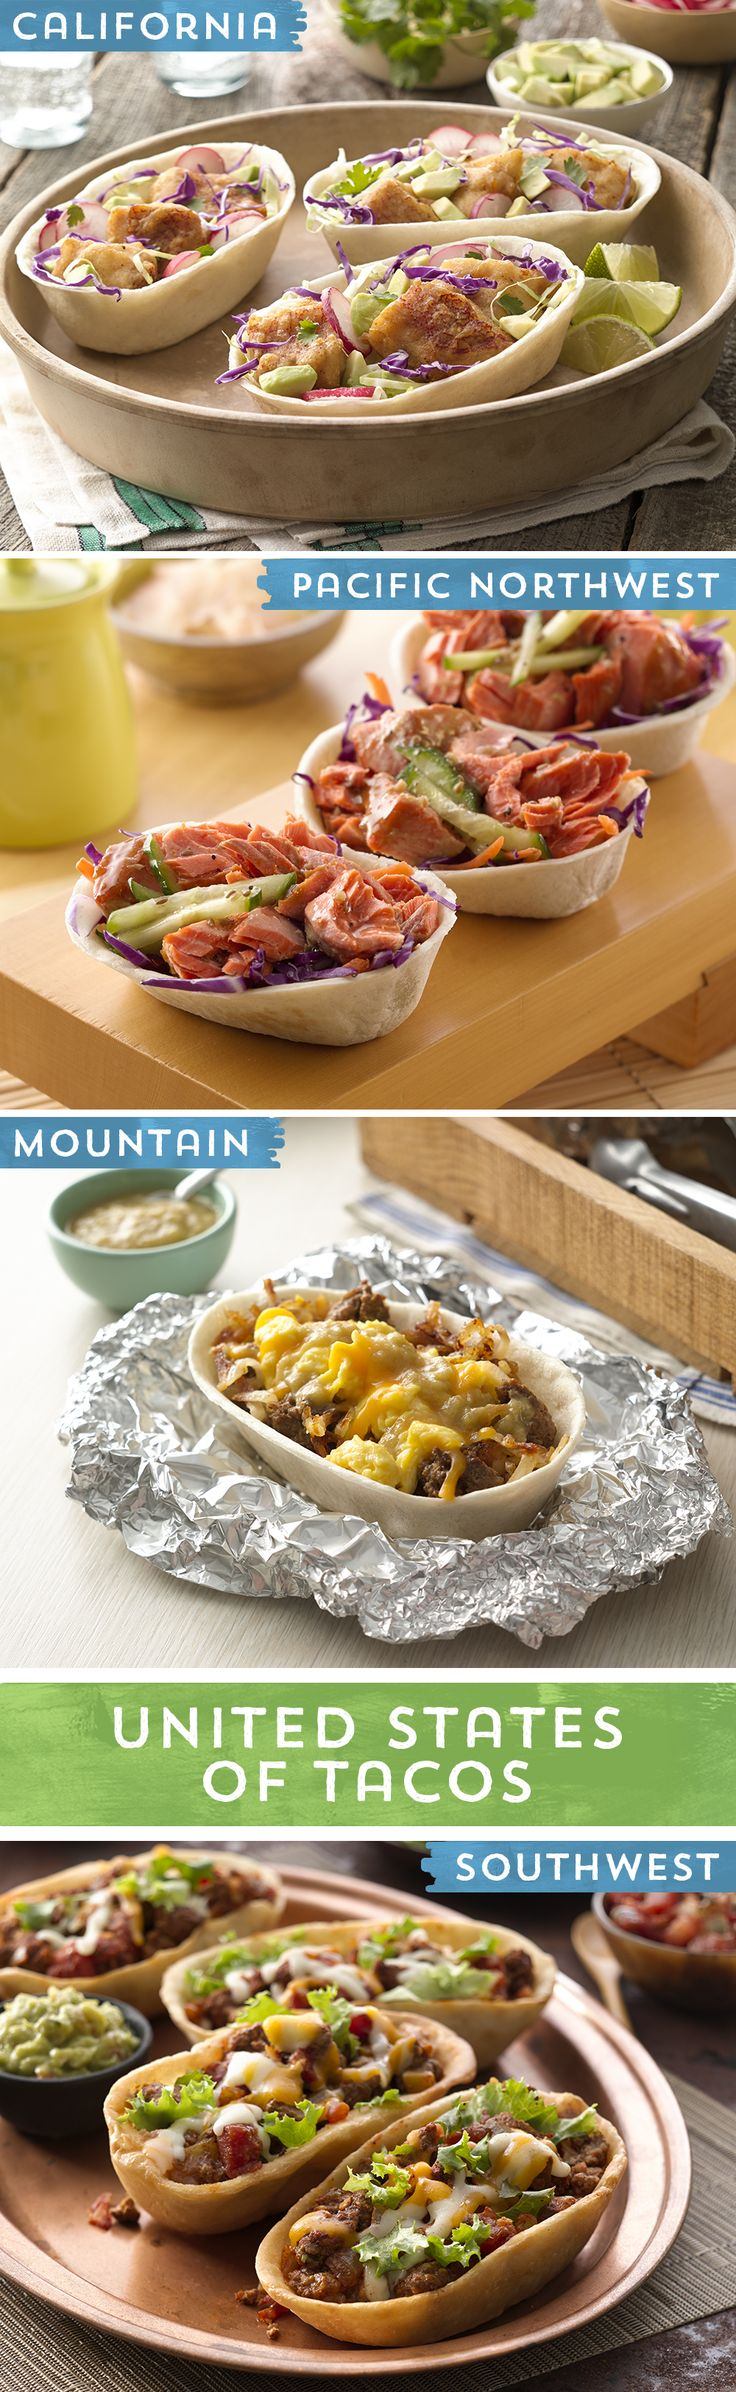 From California to the mountains of Colorado, from Arizona to the coast of the Pacific Northwest, the Western U.S. is full of unique flavors and cooking styles... all of which make for delicious tacos! These fun recipes will transport your taste buds all over the country, in the United States of Tacos! Try out your favorite Western flavor, or help us taco-fy a regional favorite of your own!